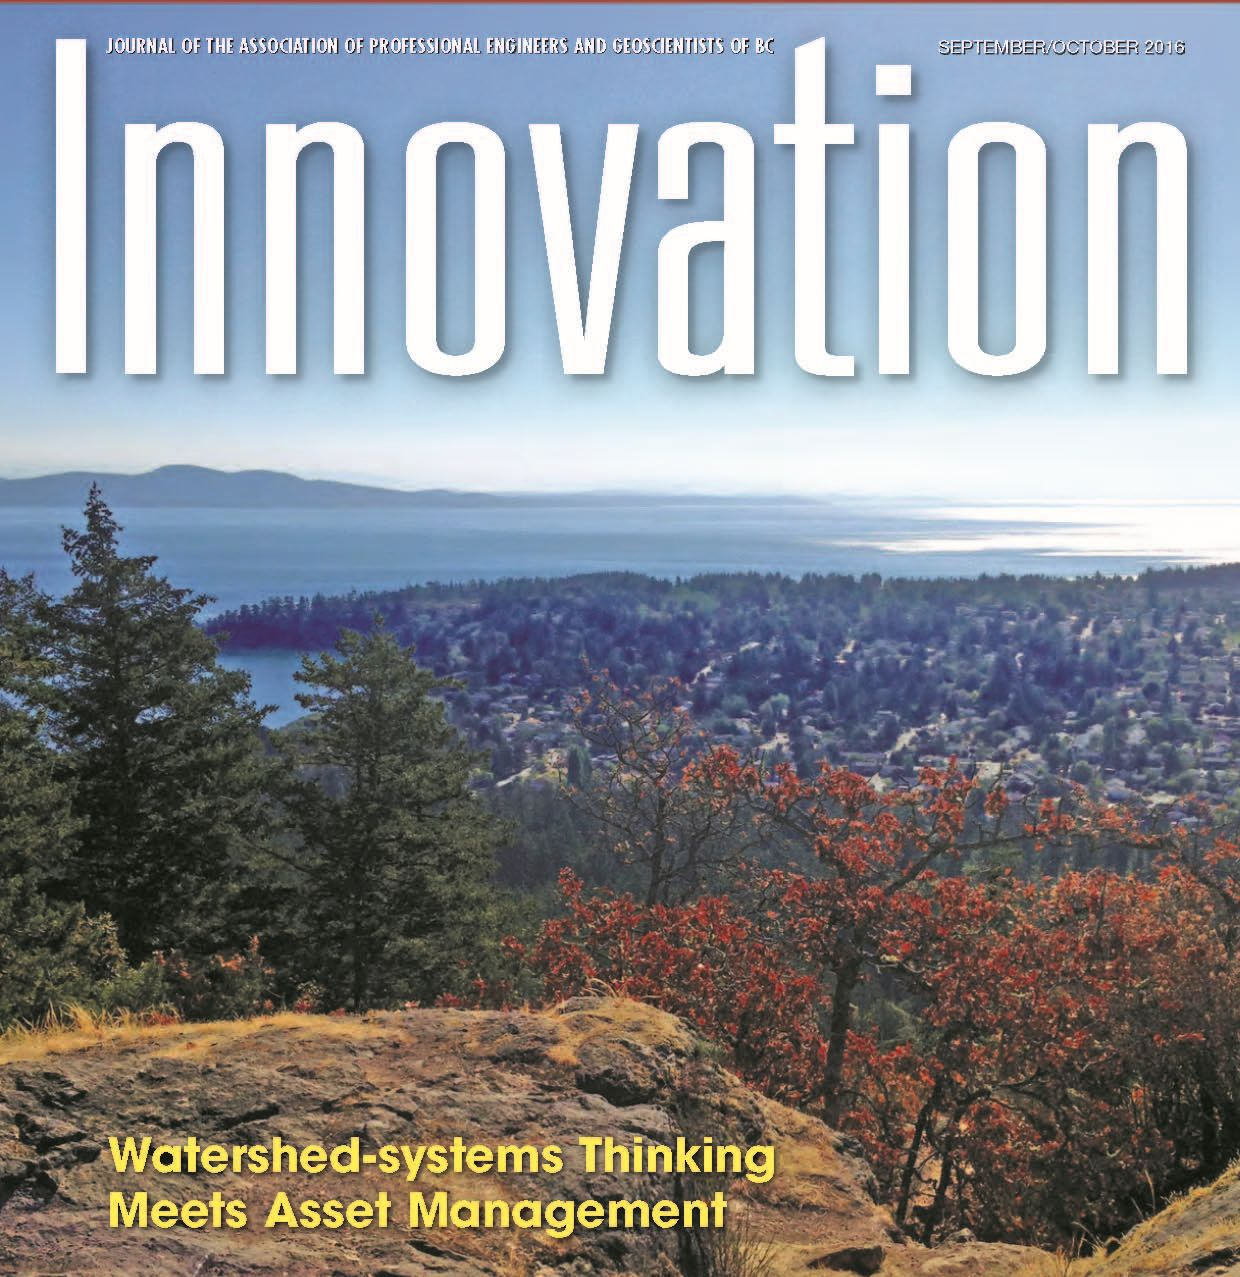 Innovation_2016Sept.Oct_cover